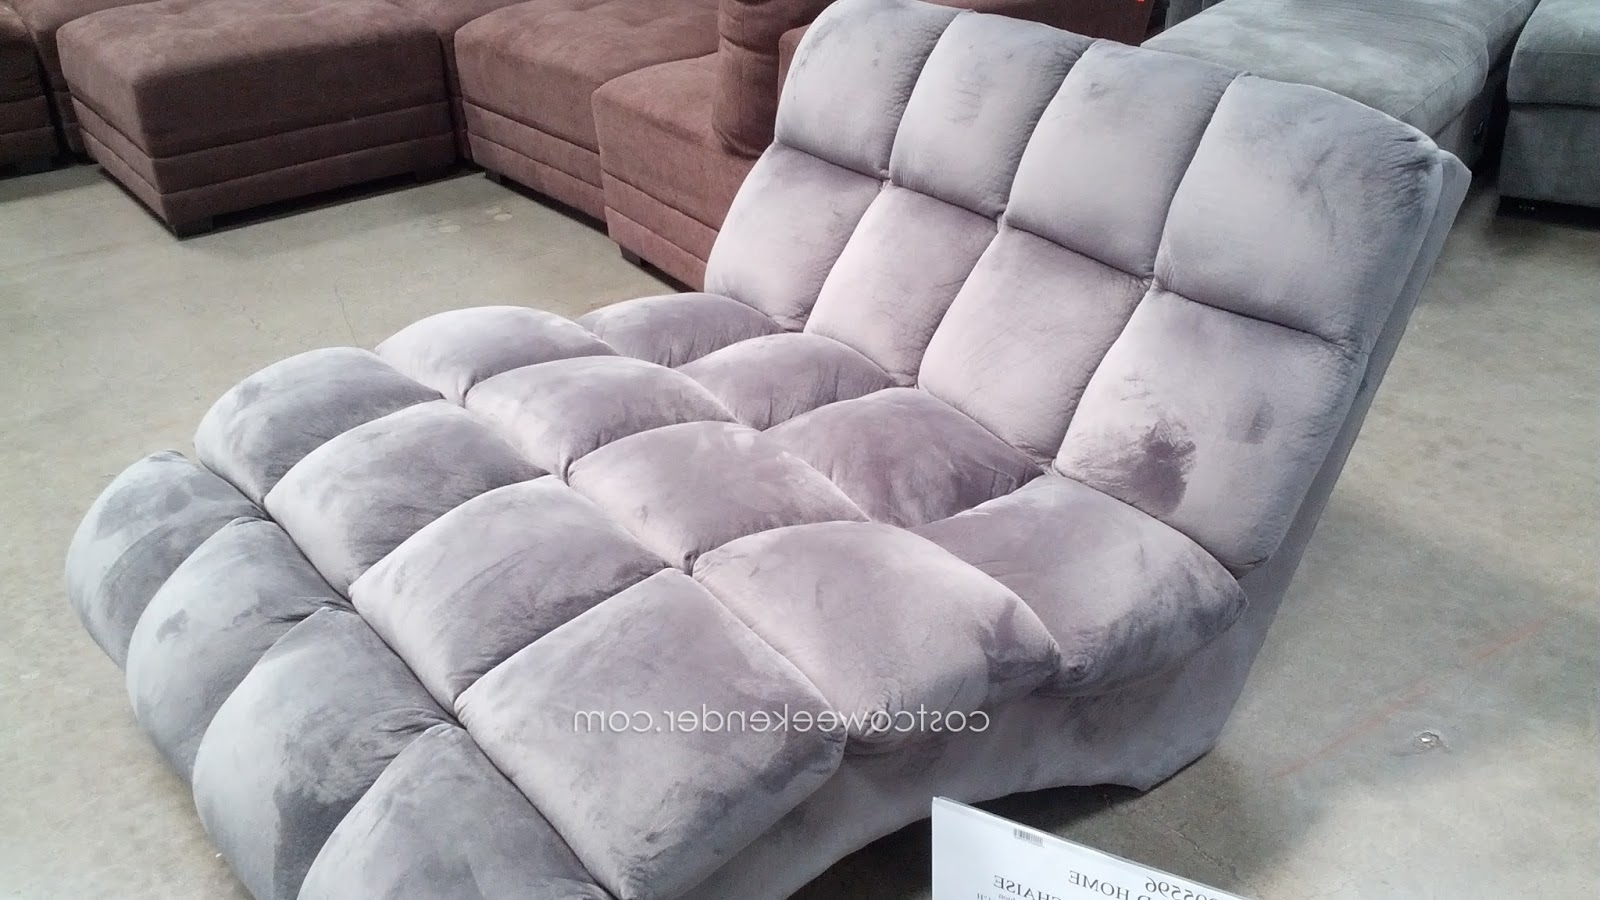 Emerald Home Boylston Double Chaise Lounge At Costco (View 6 of 15)